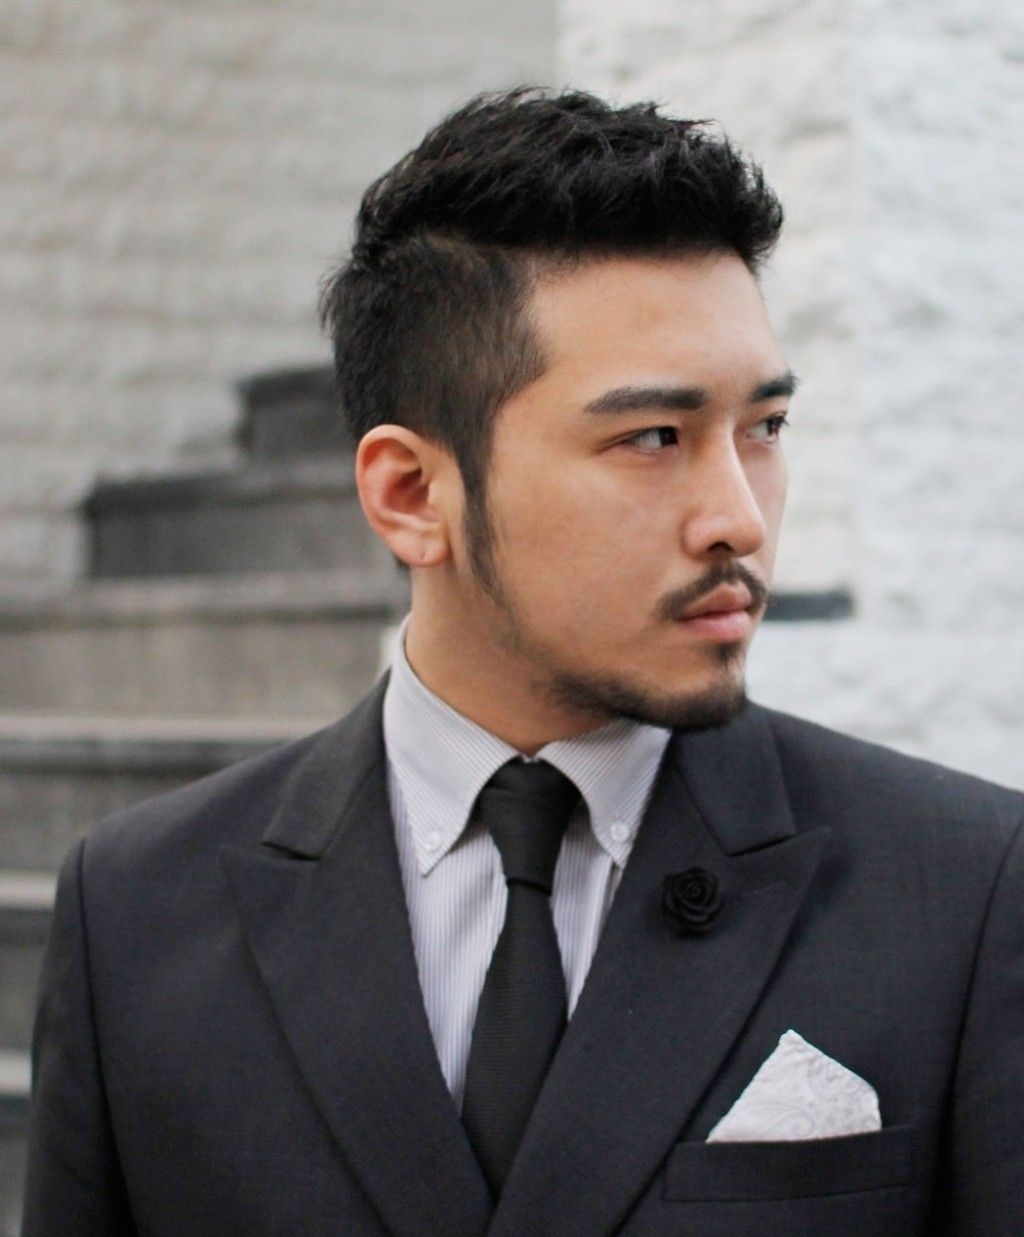 Haircut For Round Face Asian Male Wavy Haircut